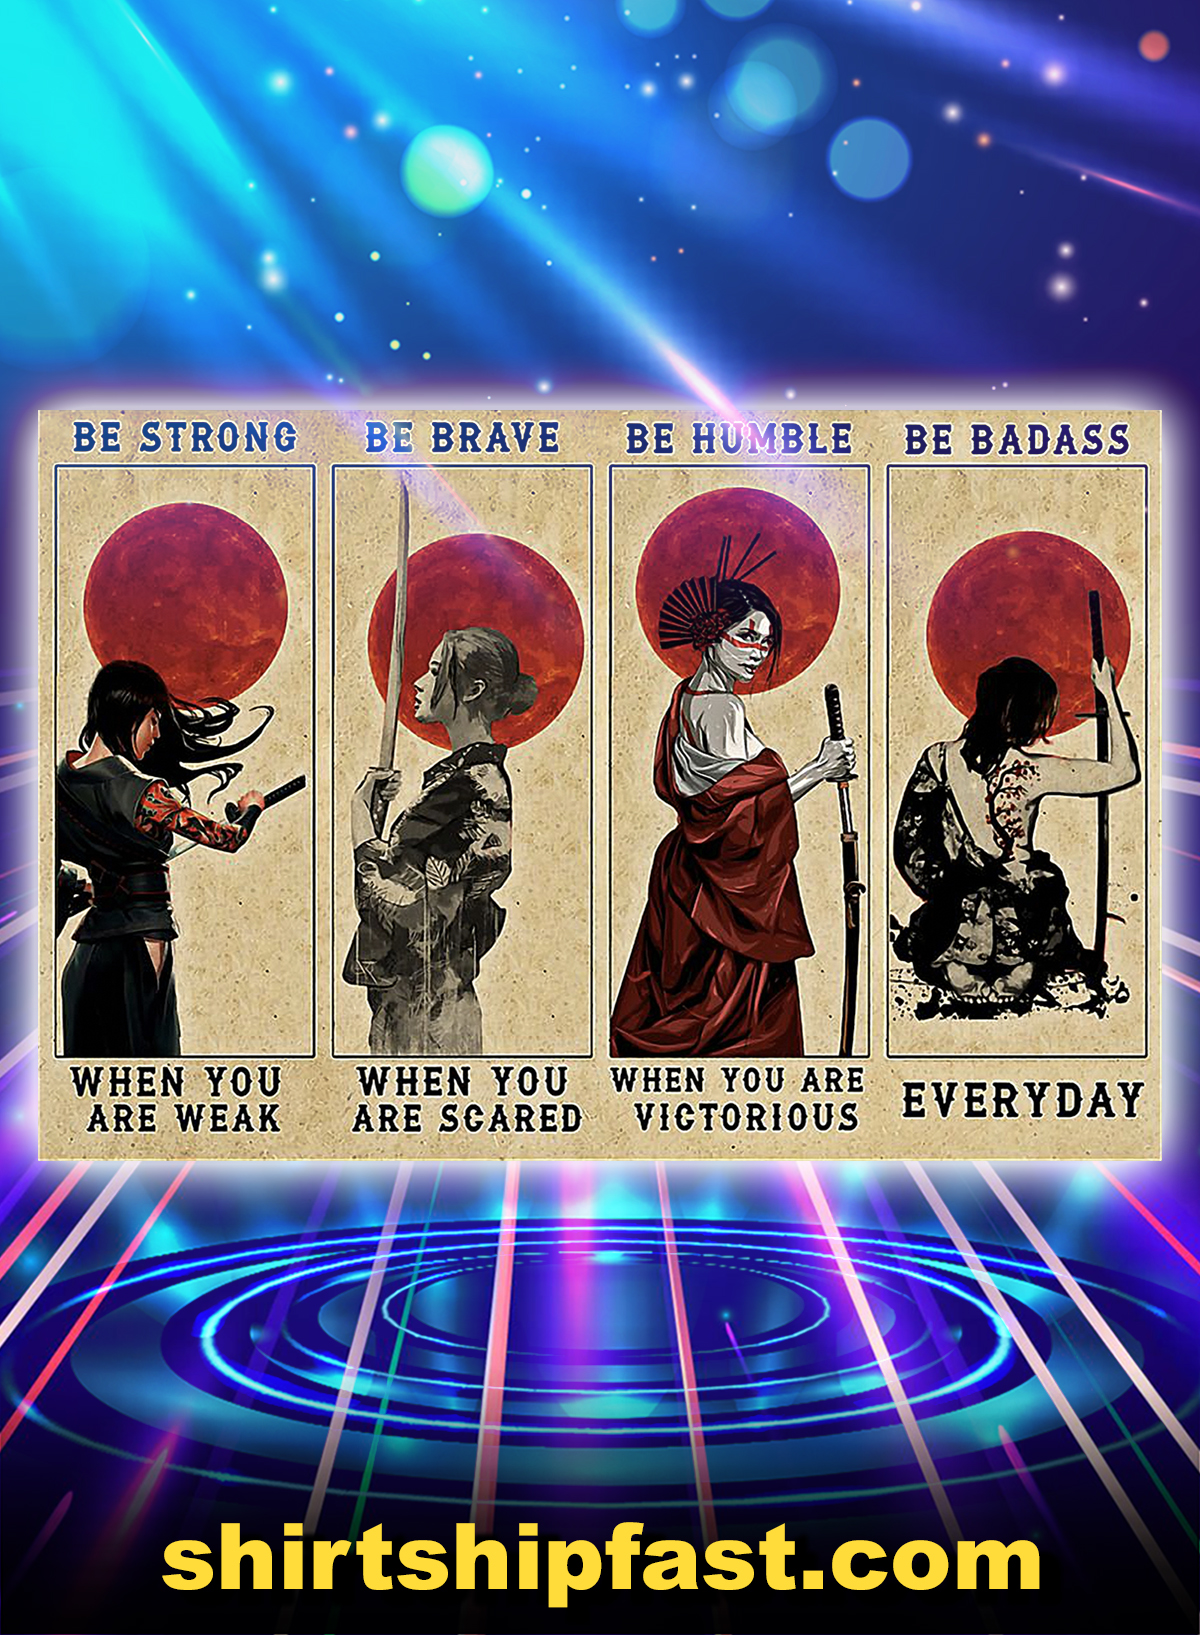 Poster samurai girl be strong be brave be humble be badass